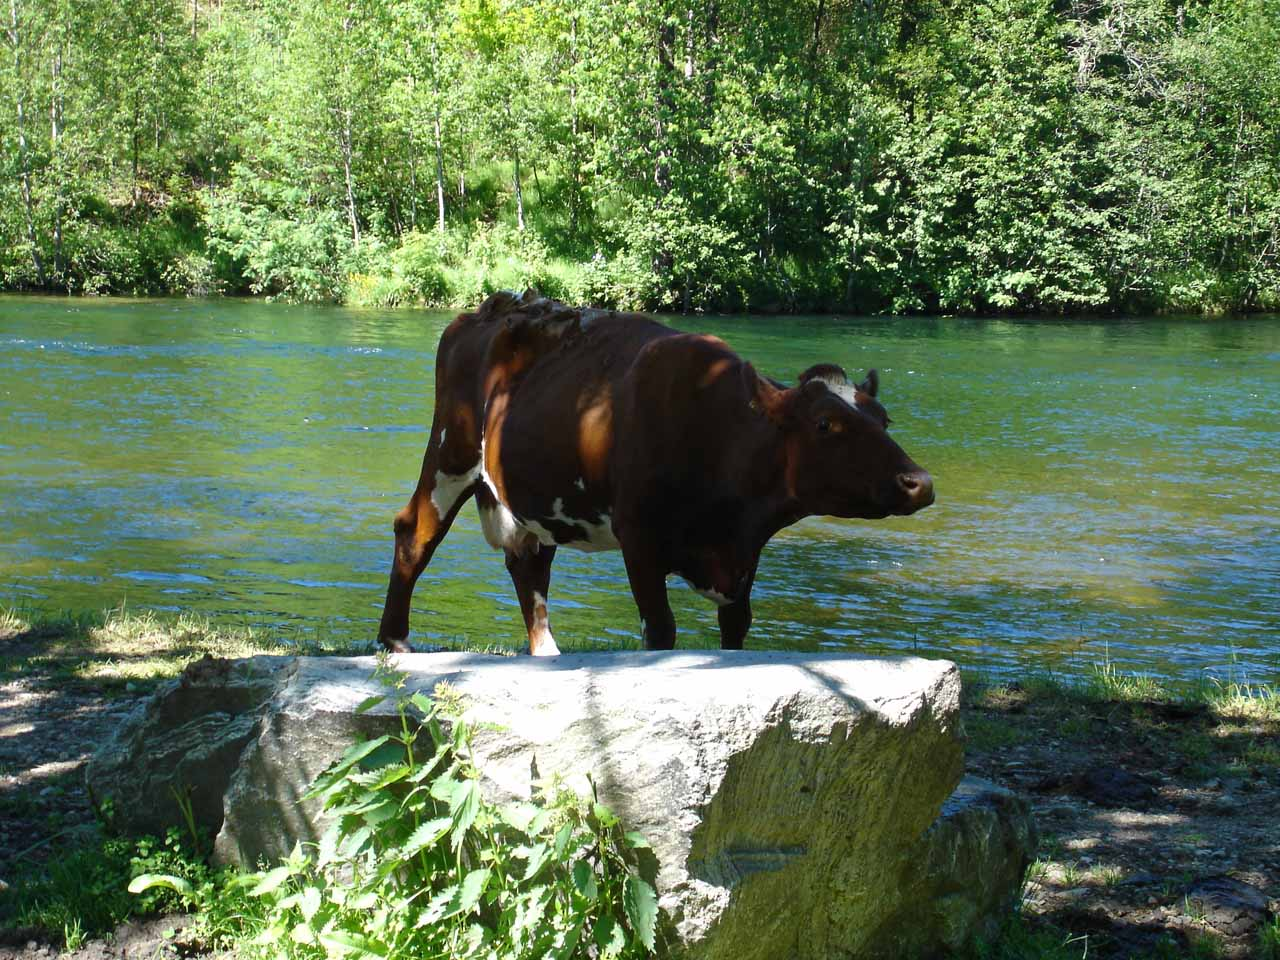 As we entered the agricultural field, there were many cows grazing in front of Huldrefossen, including this one chilling out by the river Jølstra